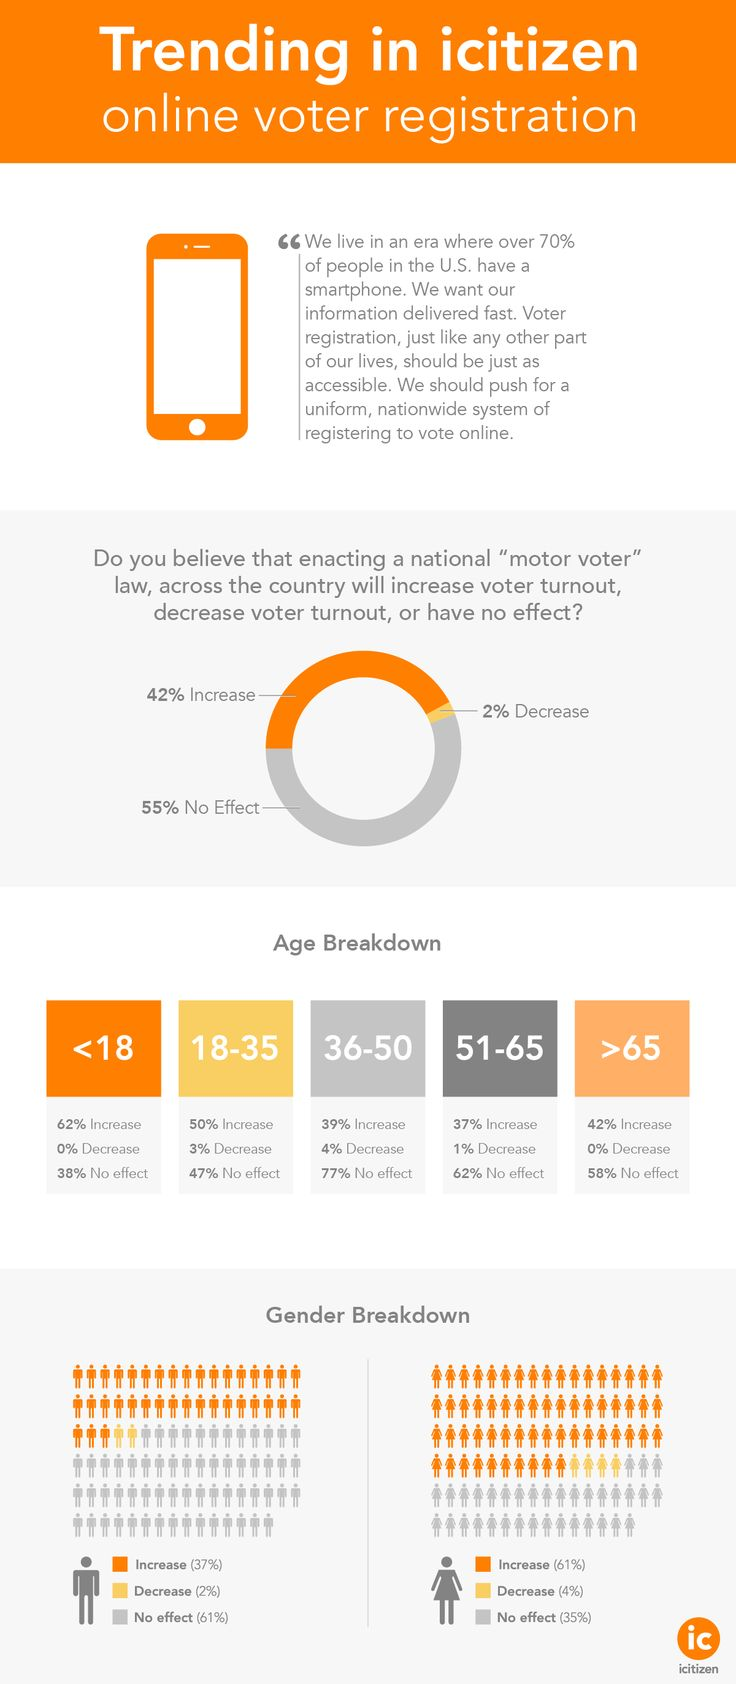 Should national online voter registration be embraced? This infographic shows some data detailing icitizen user sentiment on this issue. @rockthevote2012 @headcount @projectvote @voterheads @codeforamerica @CitDiplomacy @atlascorps @knightfnd @1776dc @sun